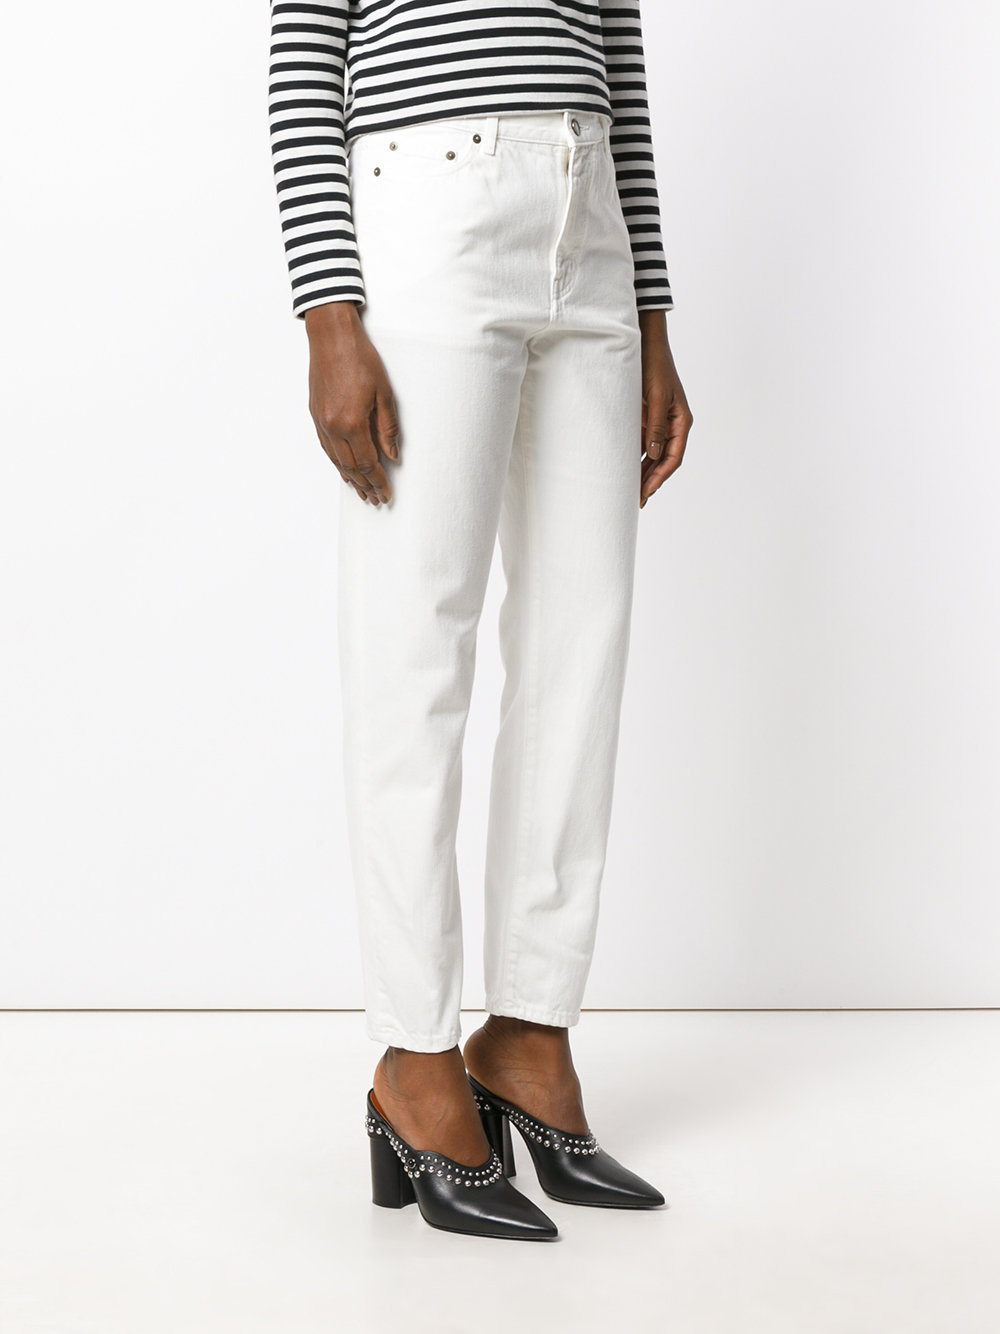 Luxury French fashion house Saint Laurent presents these white jeans to its AW17 collection. Expertly constructed from Italian denim, they feature a button & zip fastening, a waistband with belt loops, a regular length, two front pockets, two back pockets and a boxy fit.